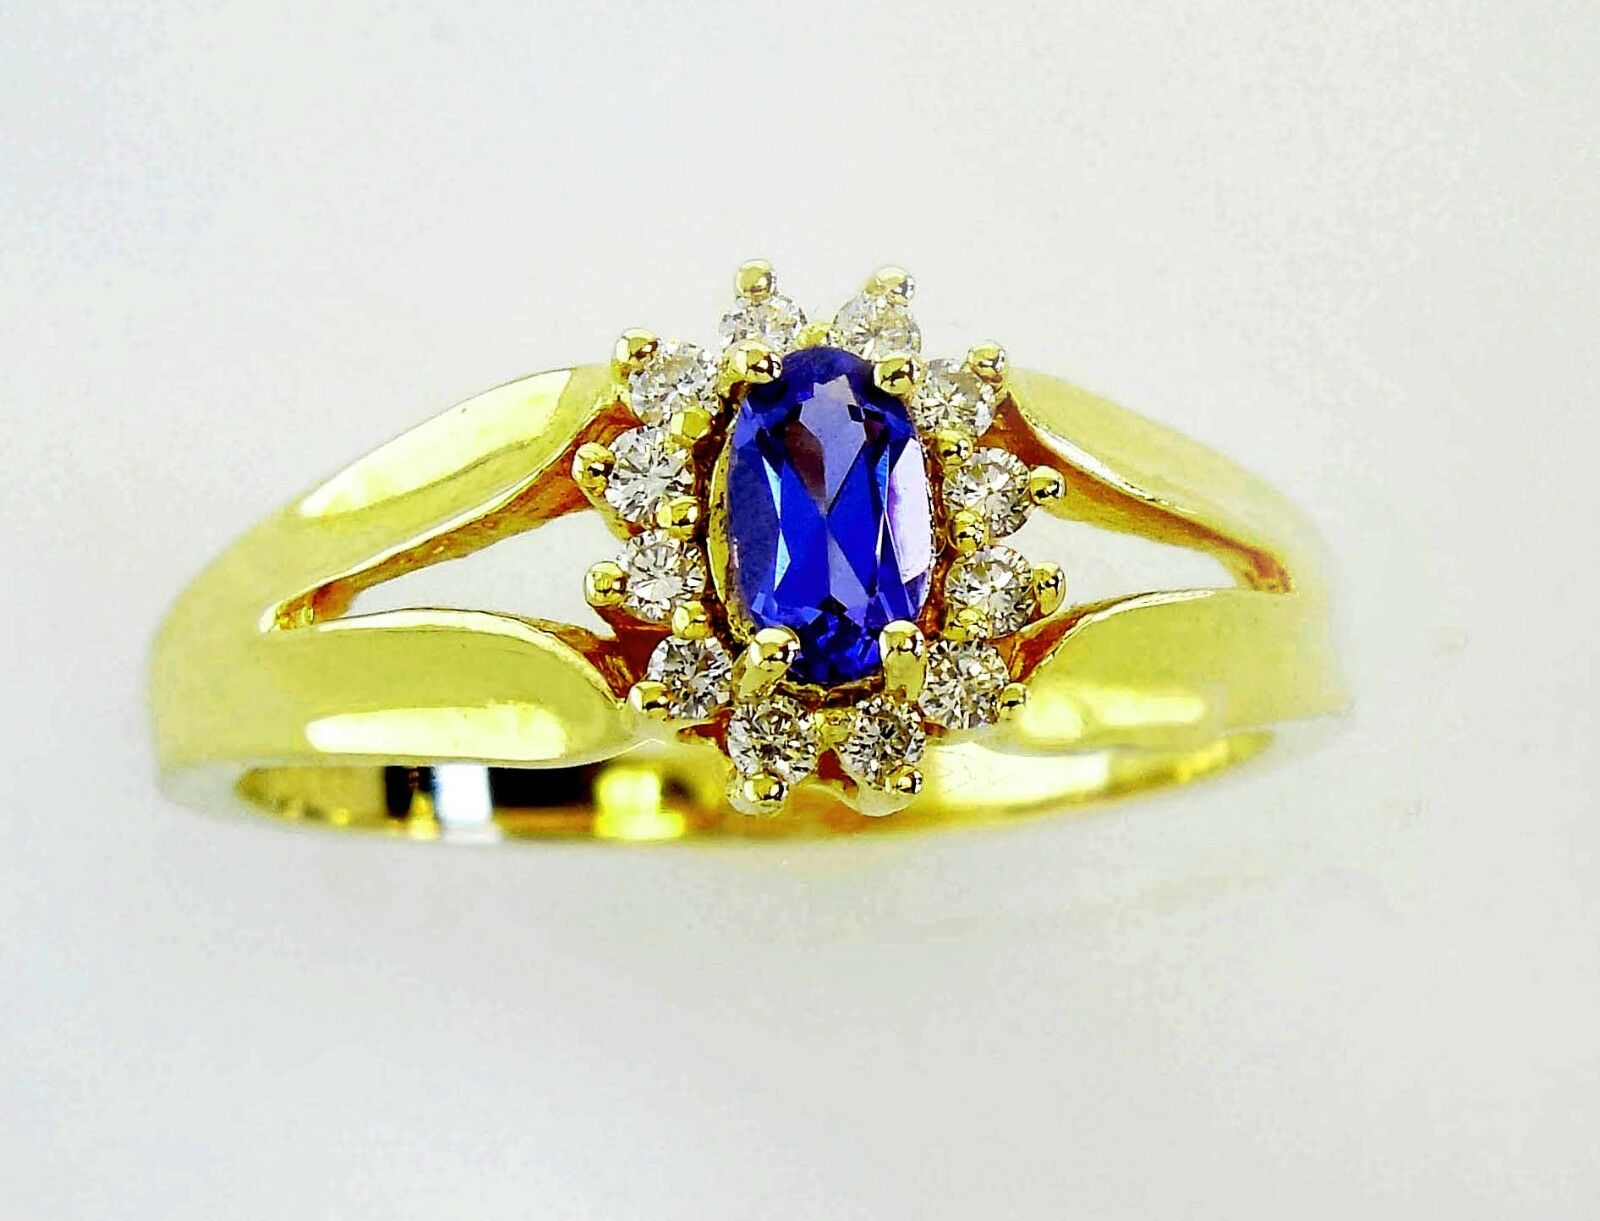 14KT YELLOW gold DAZZLING TANZANITE AND DIAMONDS LADIES RING (10696R)